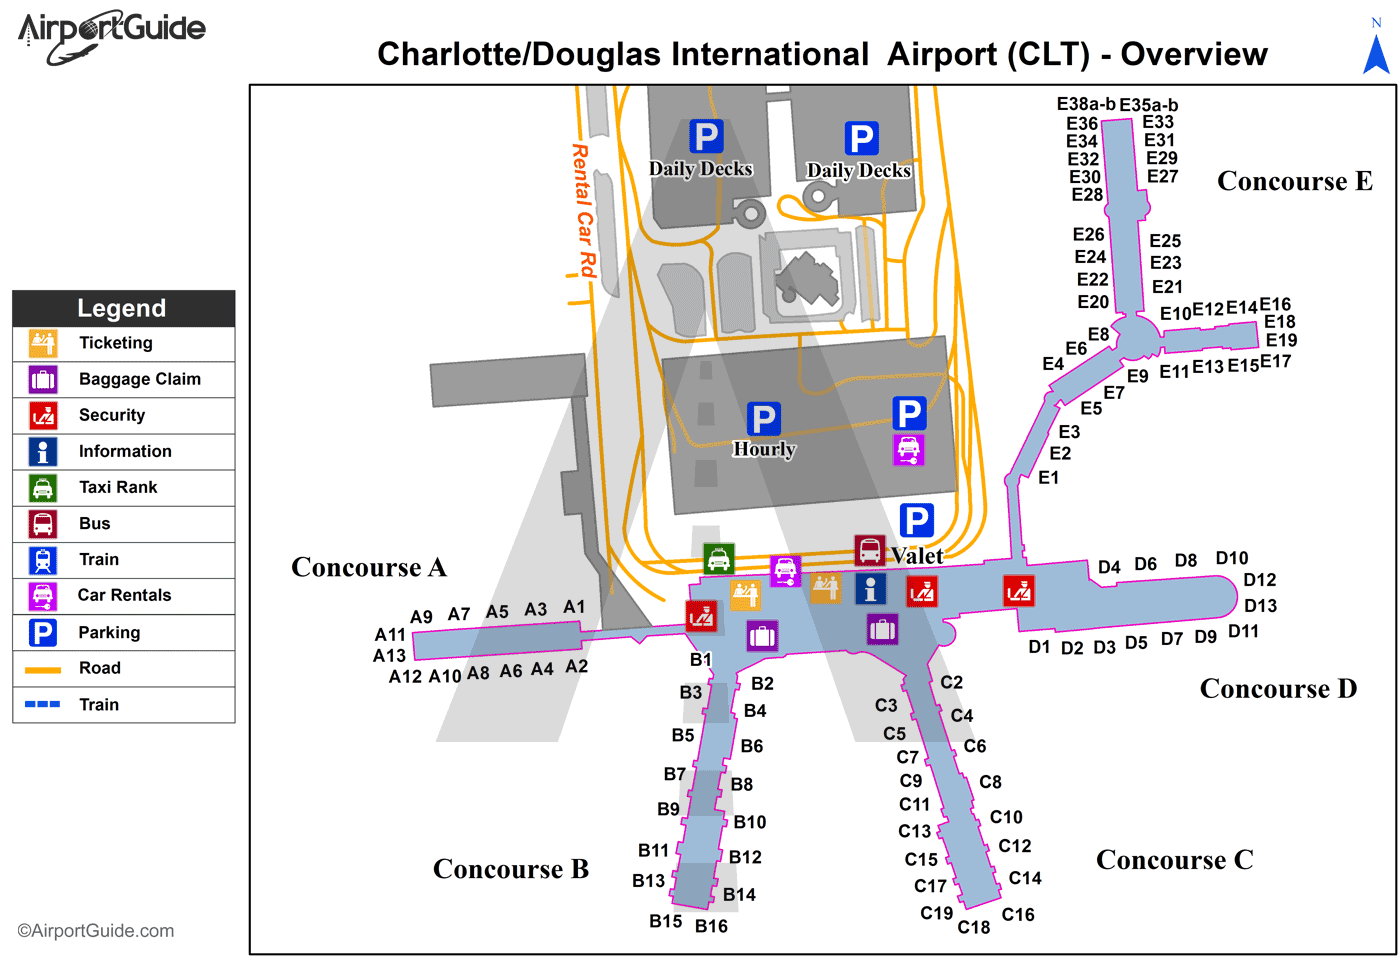 Charlotte - Charlotte/Douglas International (CLT) Airport Terminal on